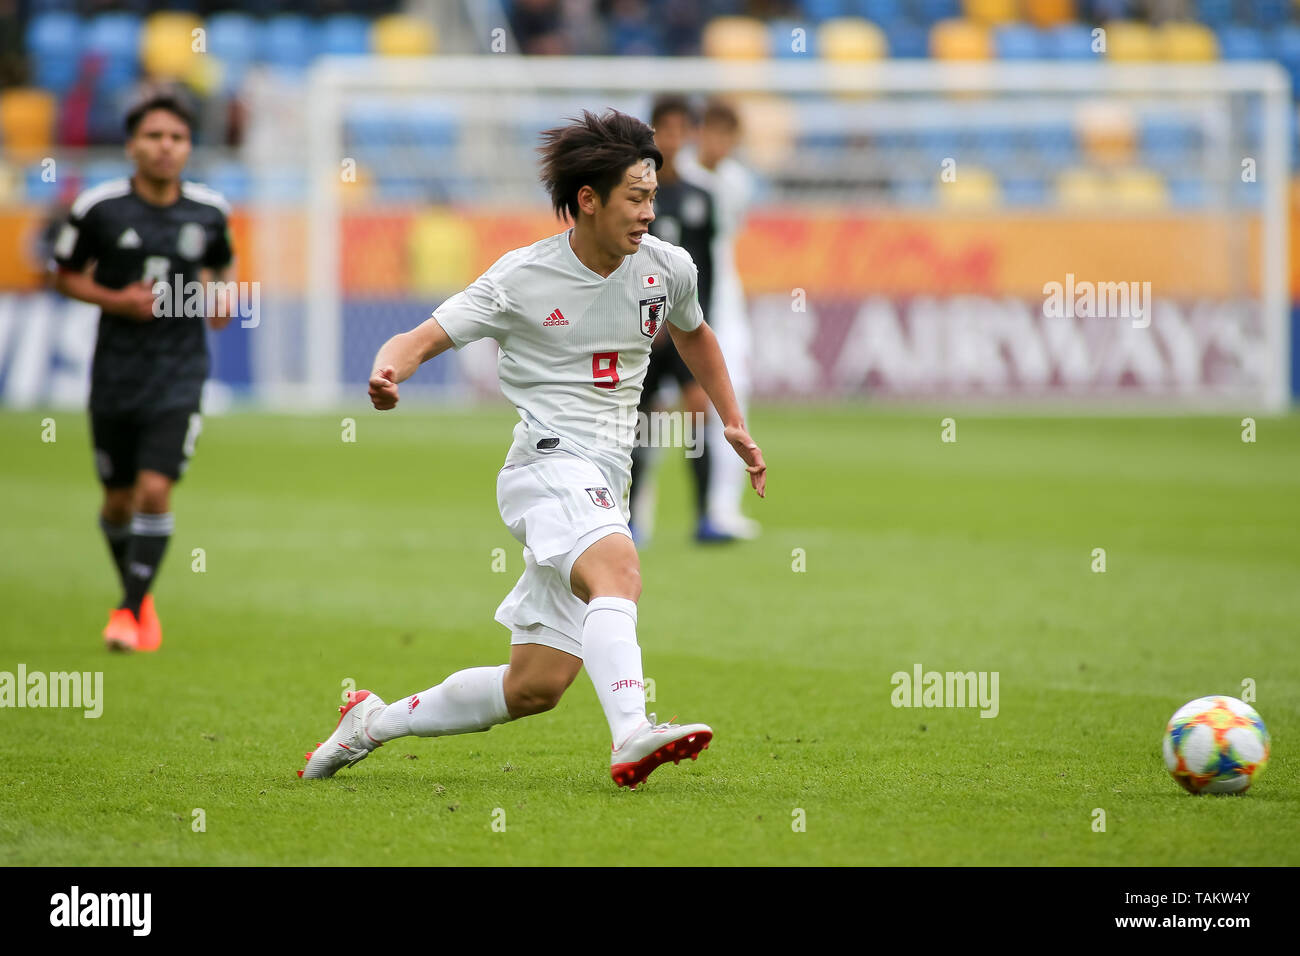 Gdynia Stadium, Gdynia, Poland - 26th May, 2019: Koki Saito from Japan seen in action during FIFA U-20 World Cup match between Mexico and Japan (GROUP B) in Gdynia. (Final score; Mexico 0:3 Japan) - Stock Image